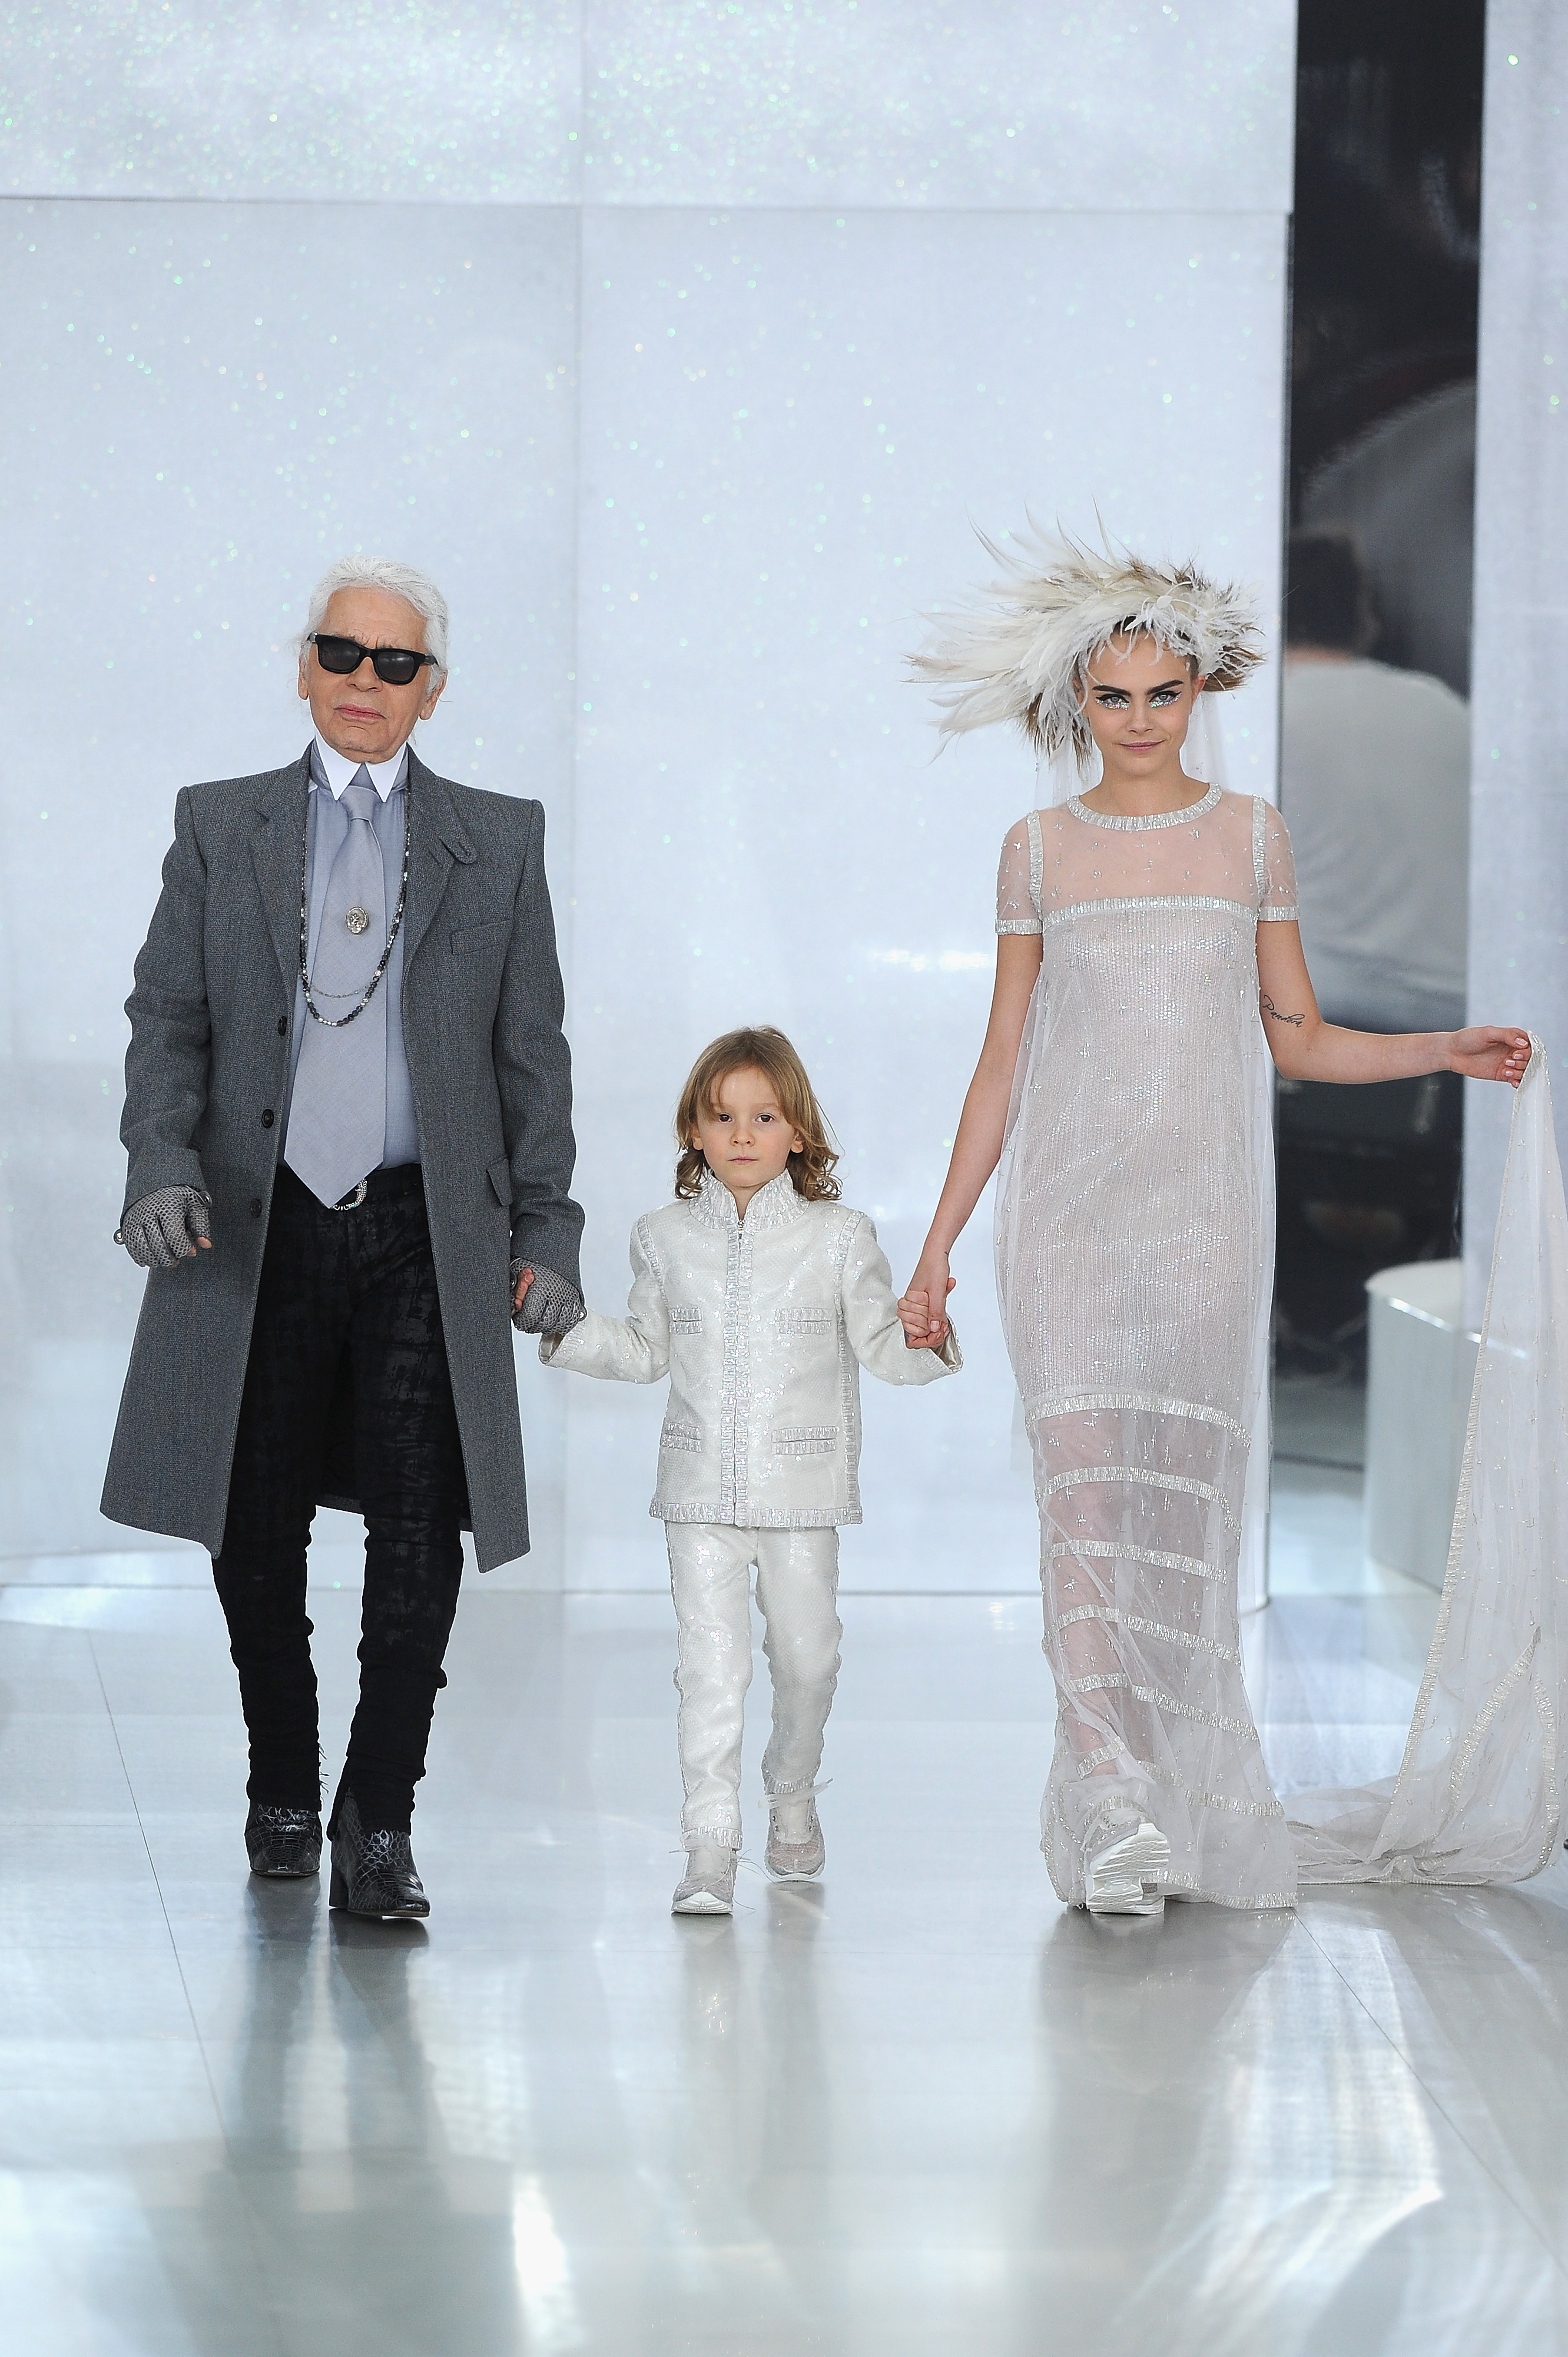 Karl Lagerfeld, Hudson Kroenig, and a sneaker-clad Cara Delevingne walk in the Chanel haute couture show last January (Photo: Getty).